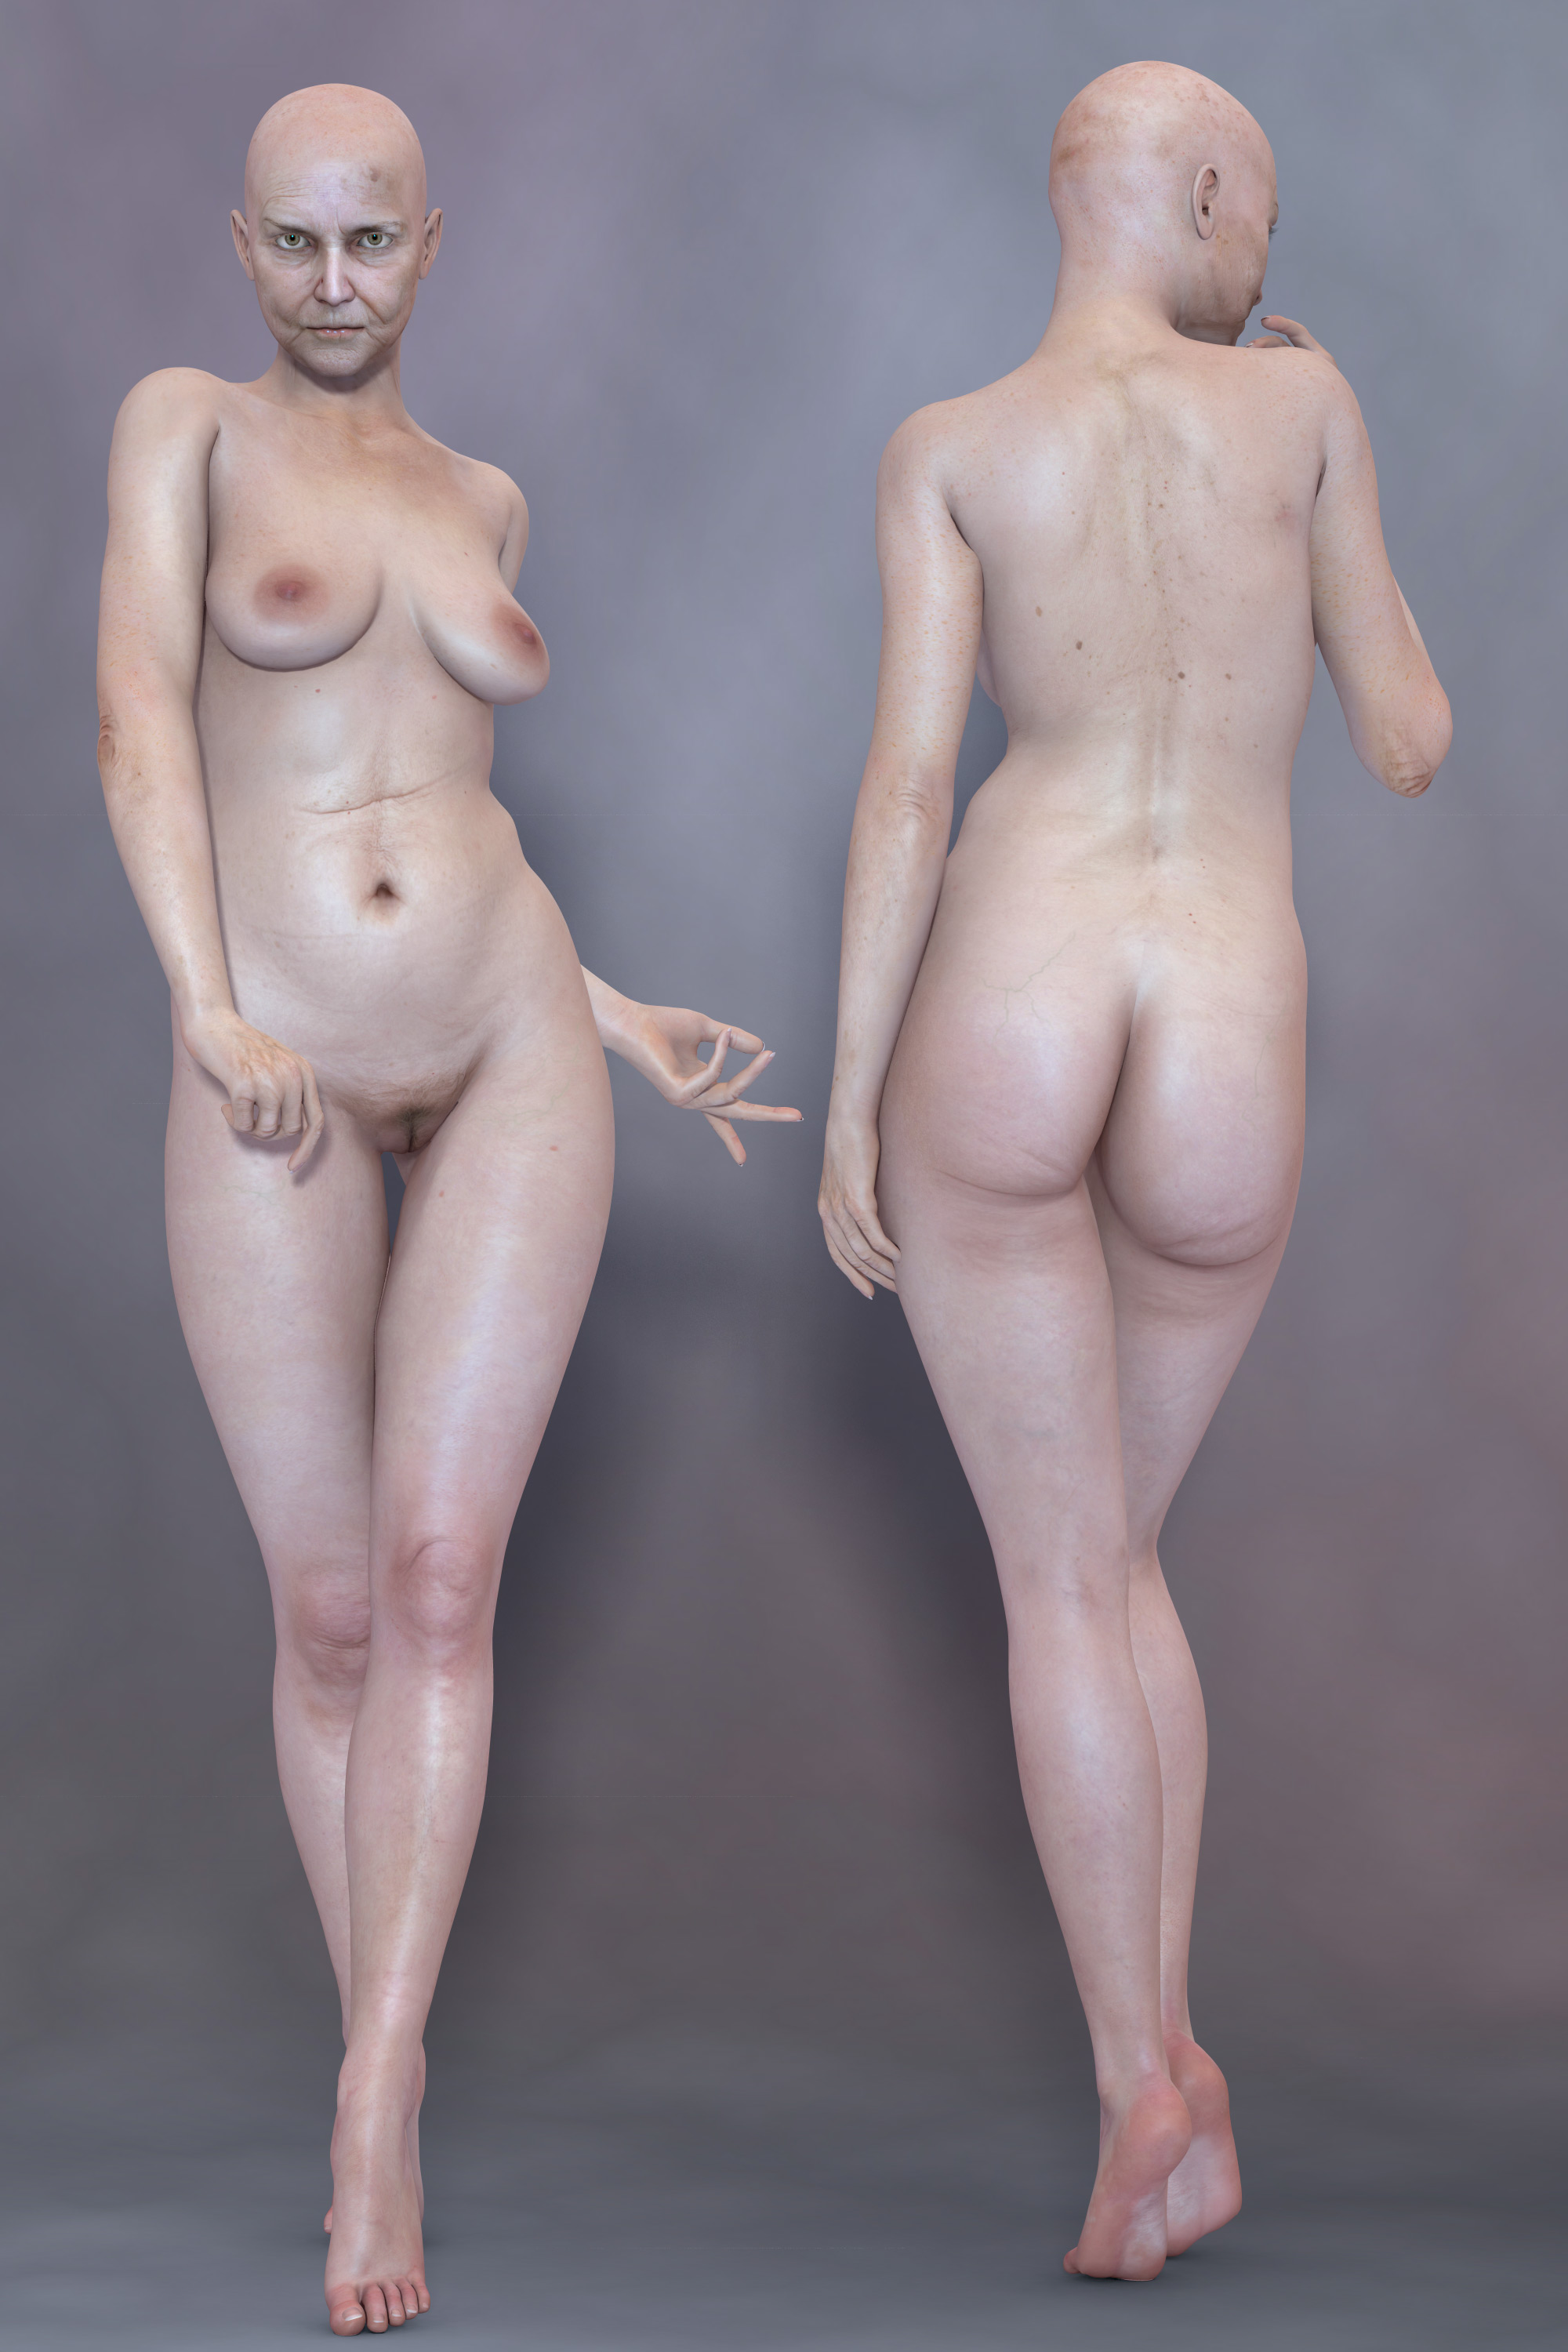 Daz3d nude pic softcore galleries